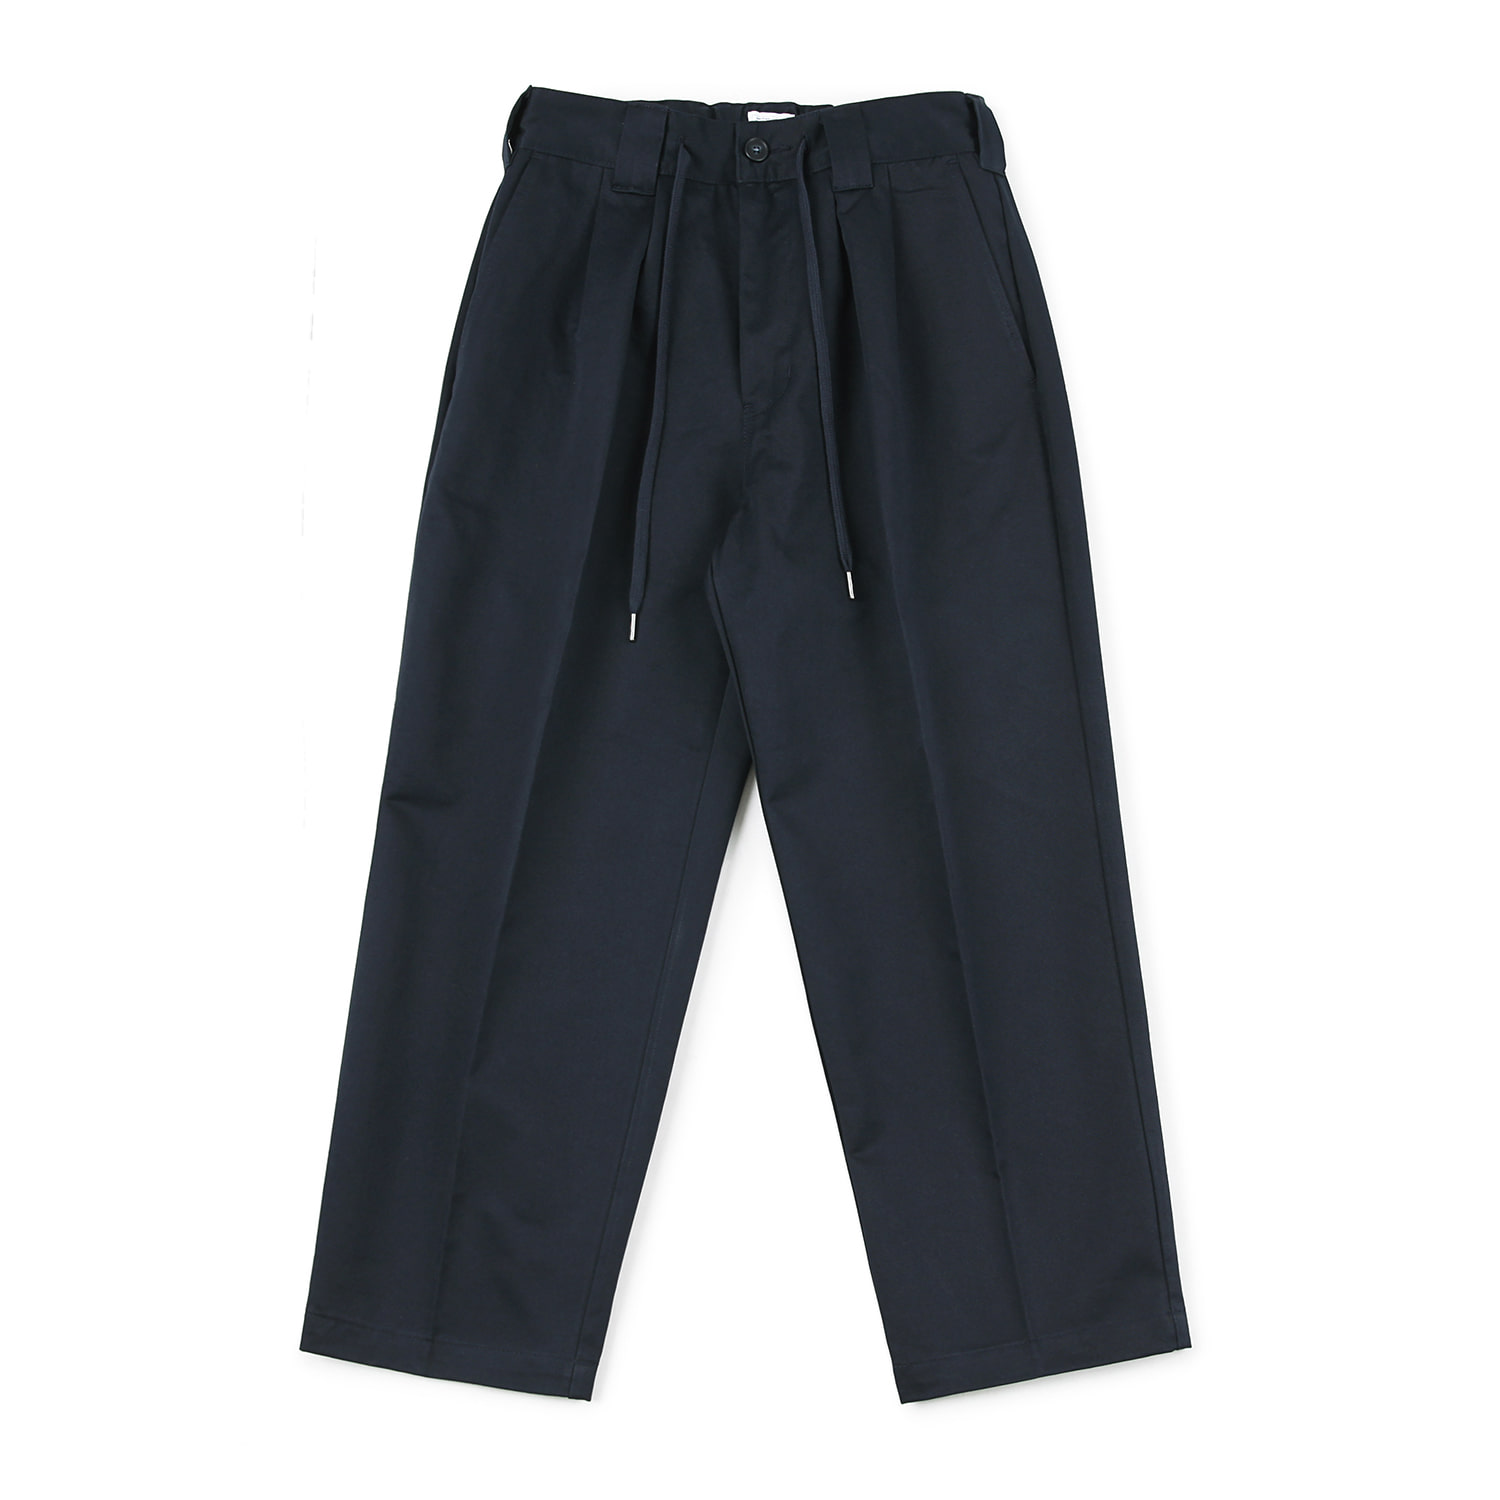 25% OFF_Skater Two tuck Pants (Navy)